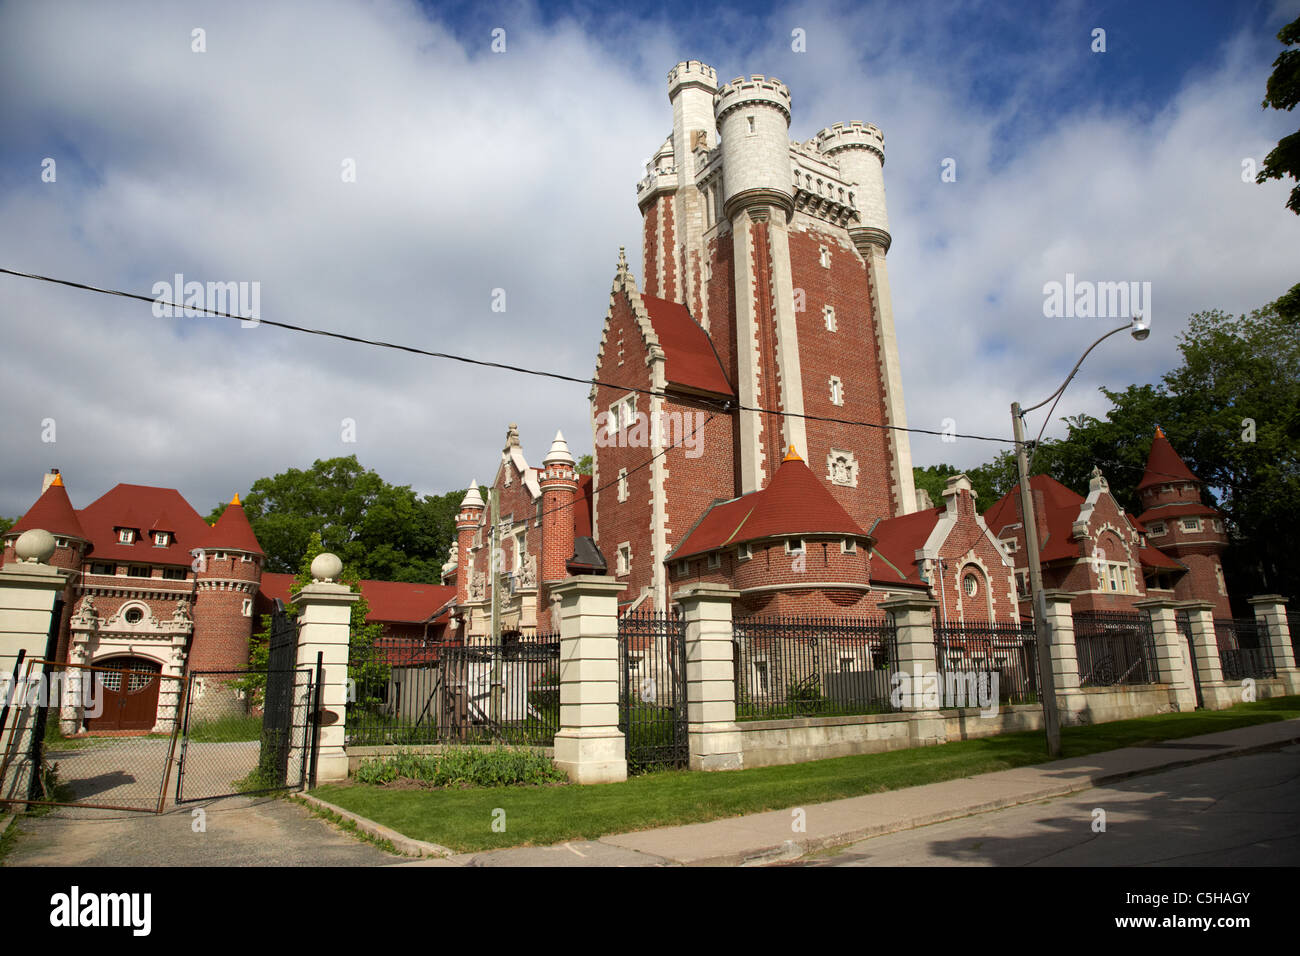 the casa loma stables and potting shed building fenced off in toronto ontario canada - Stock Image